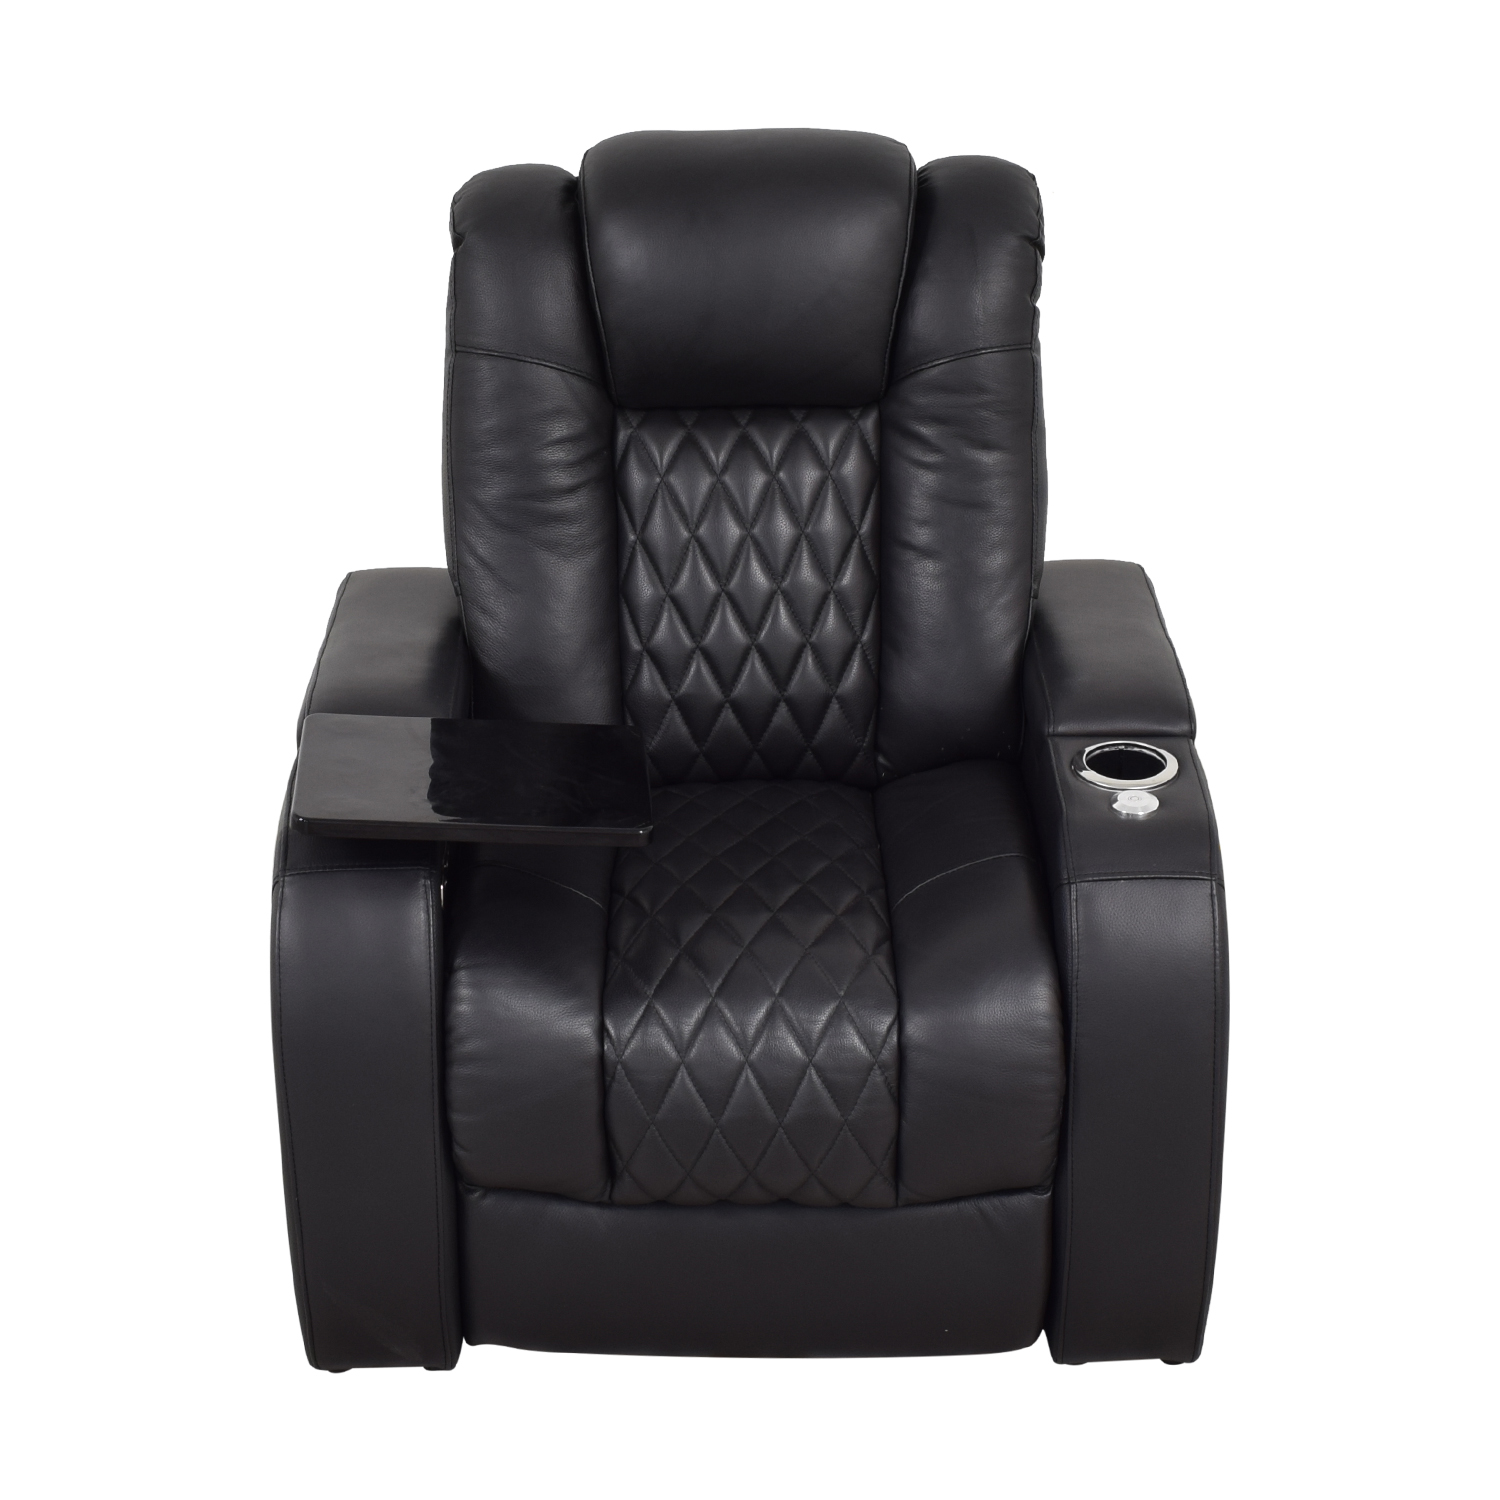 Seatcraft Seatcraft Diamante Home Theater Seating Leather Power Recliner nj